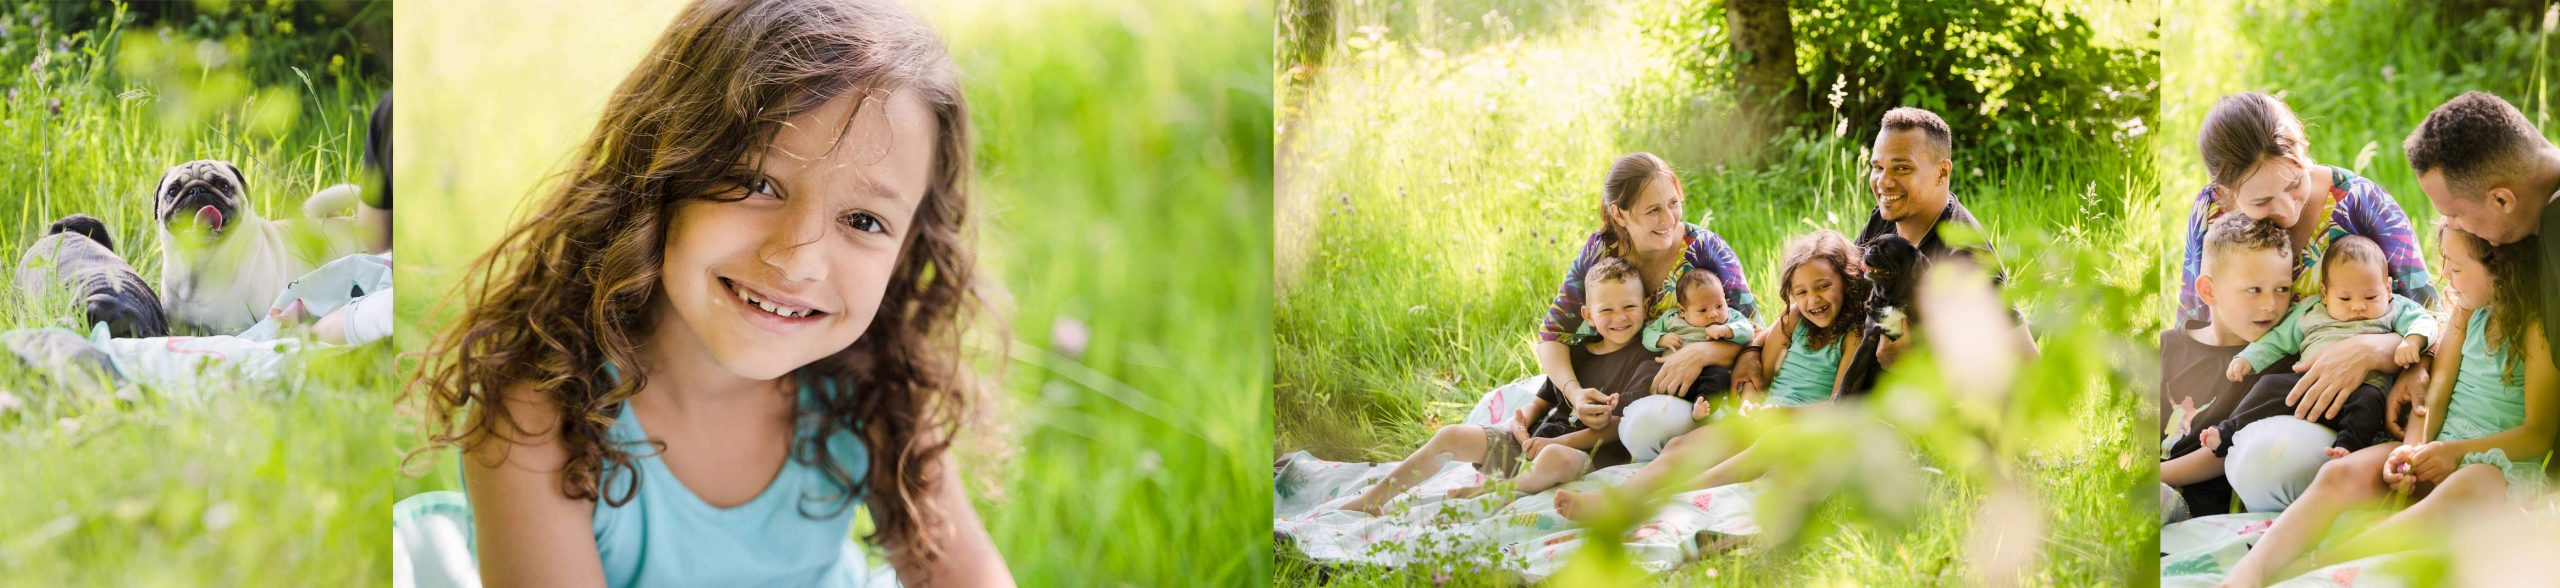 Familiensession im Wald Outdoor Picknick